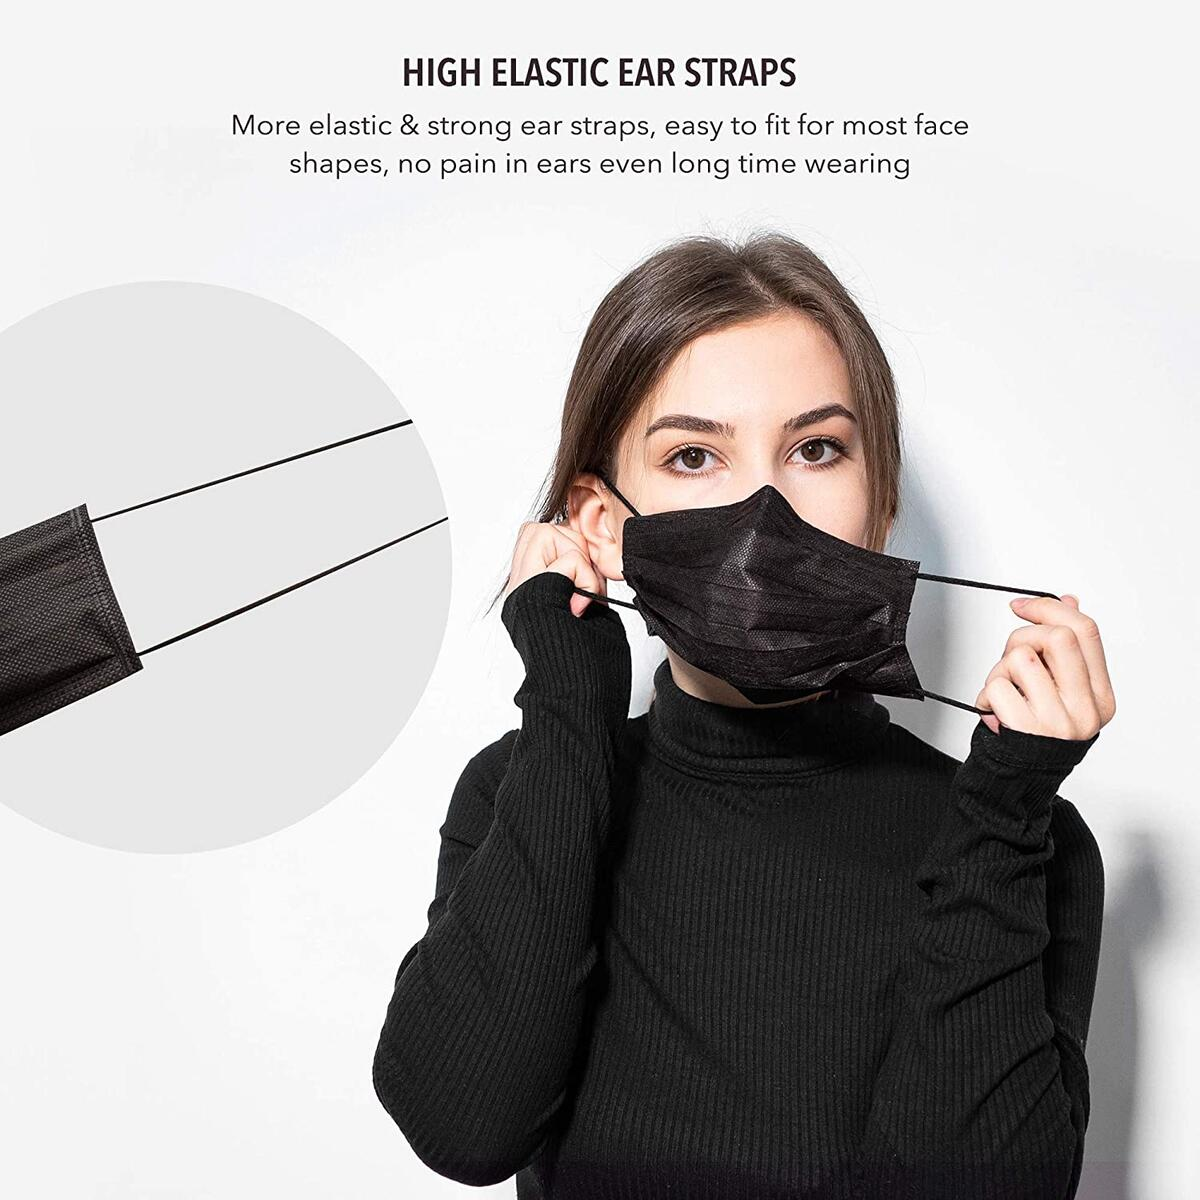 3 Layer Disposable Face Covering for Adults Indoor or Outdoor, 50 Pack (Black)